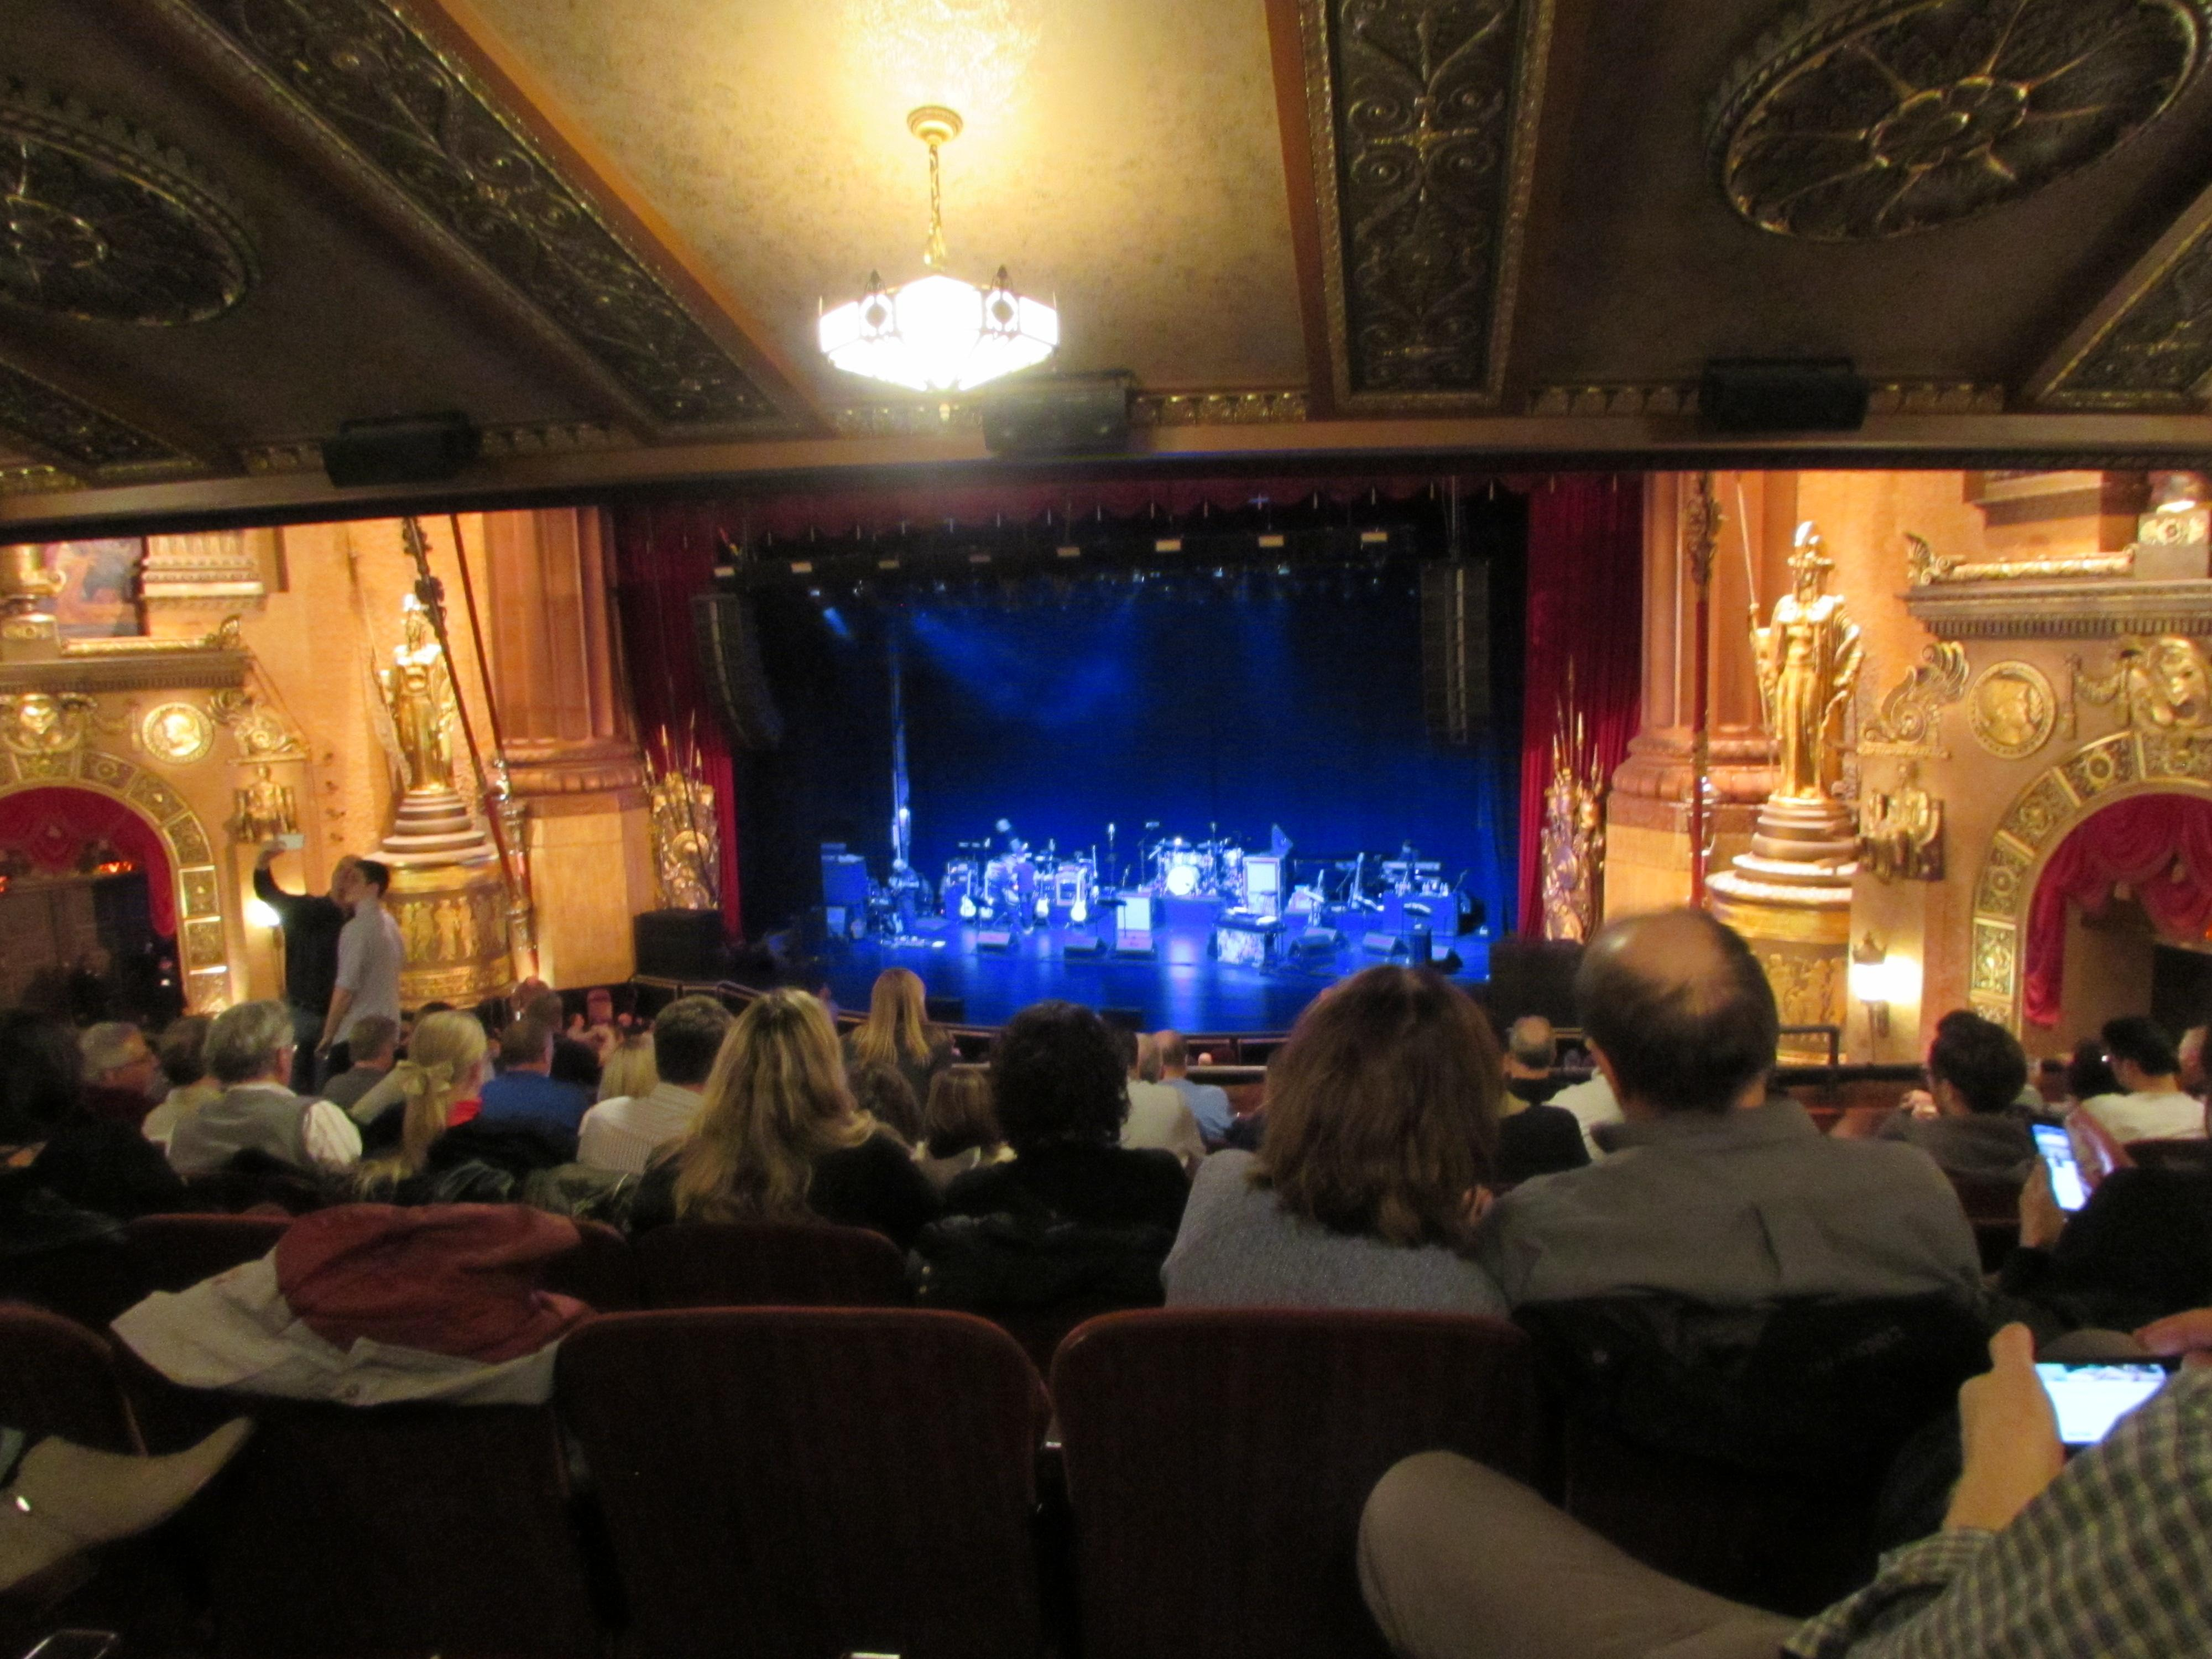 Beacon Theatre Section Loge 2 Row H Seat 24